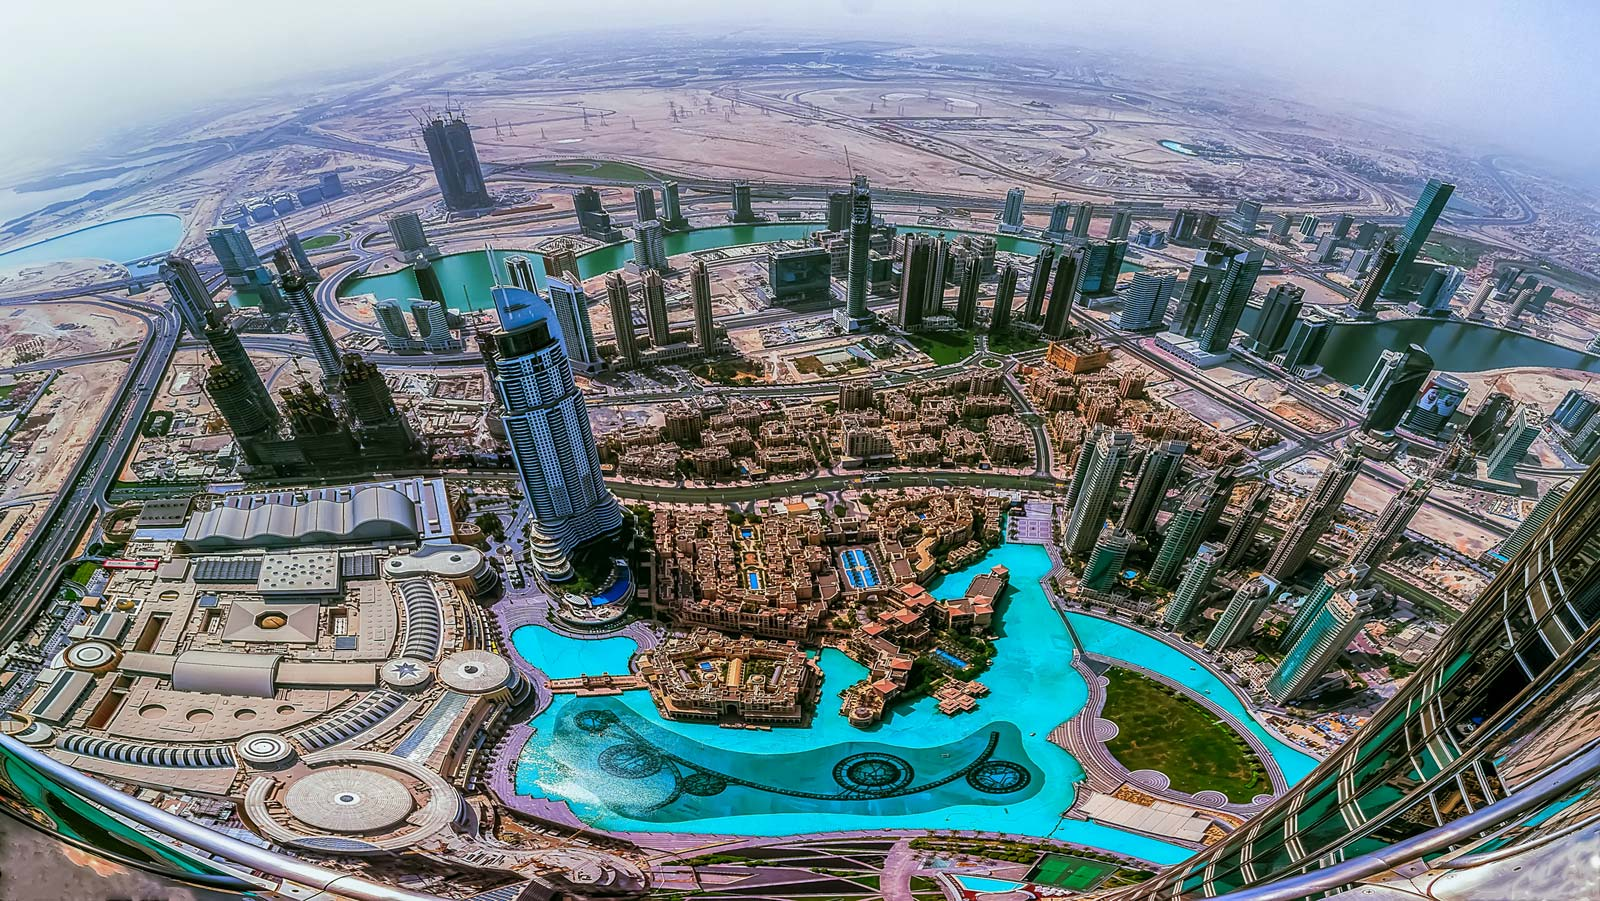 How To Buy And Receive Items Cheaply From Dubai